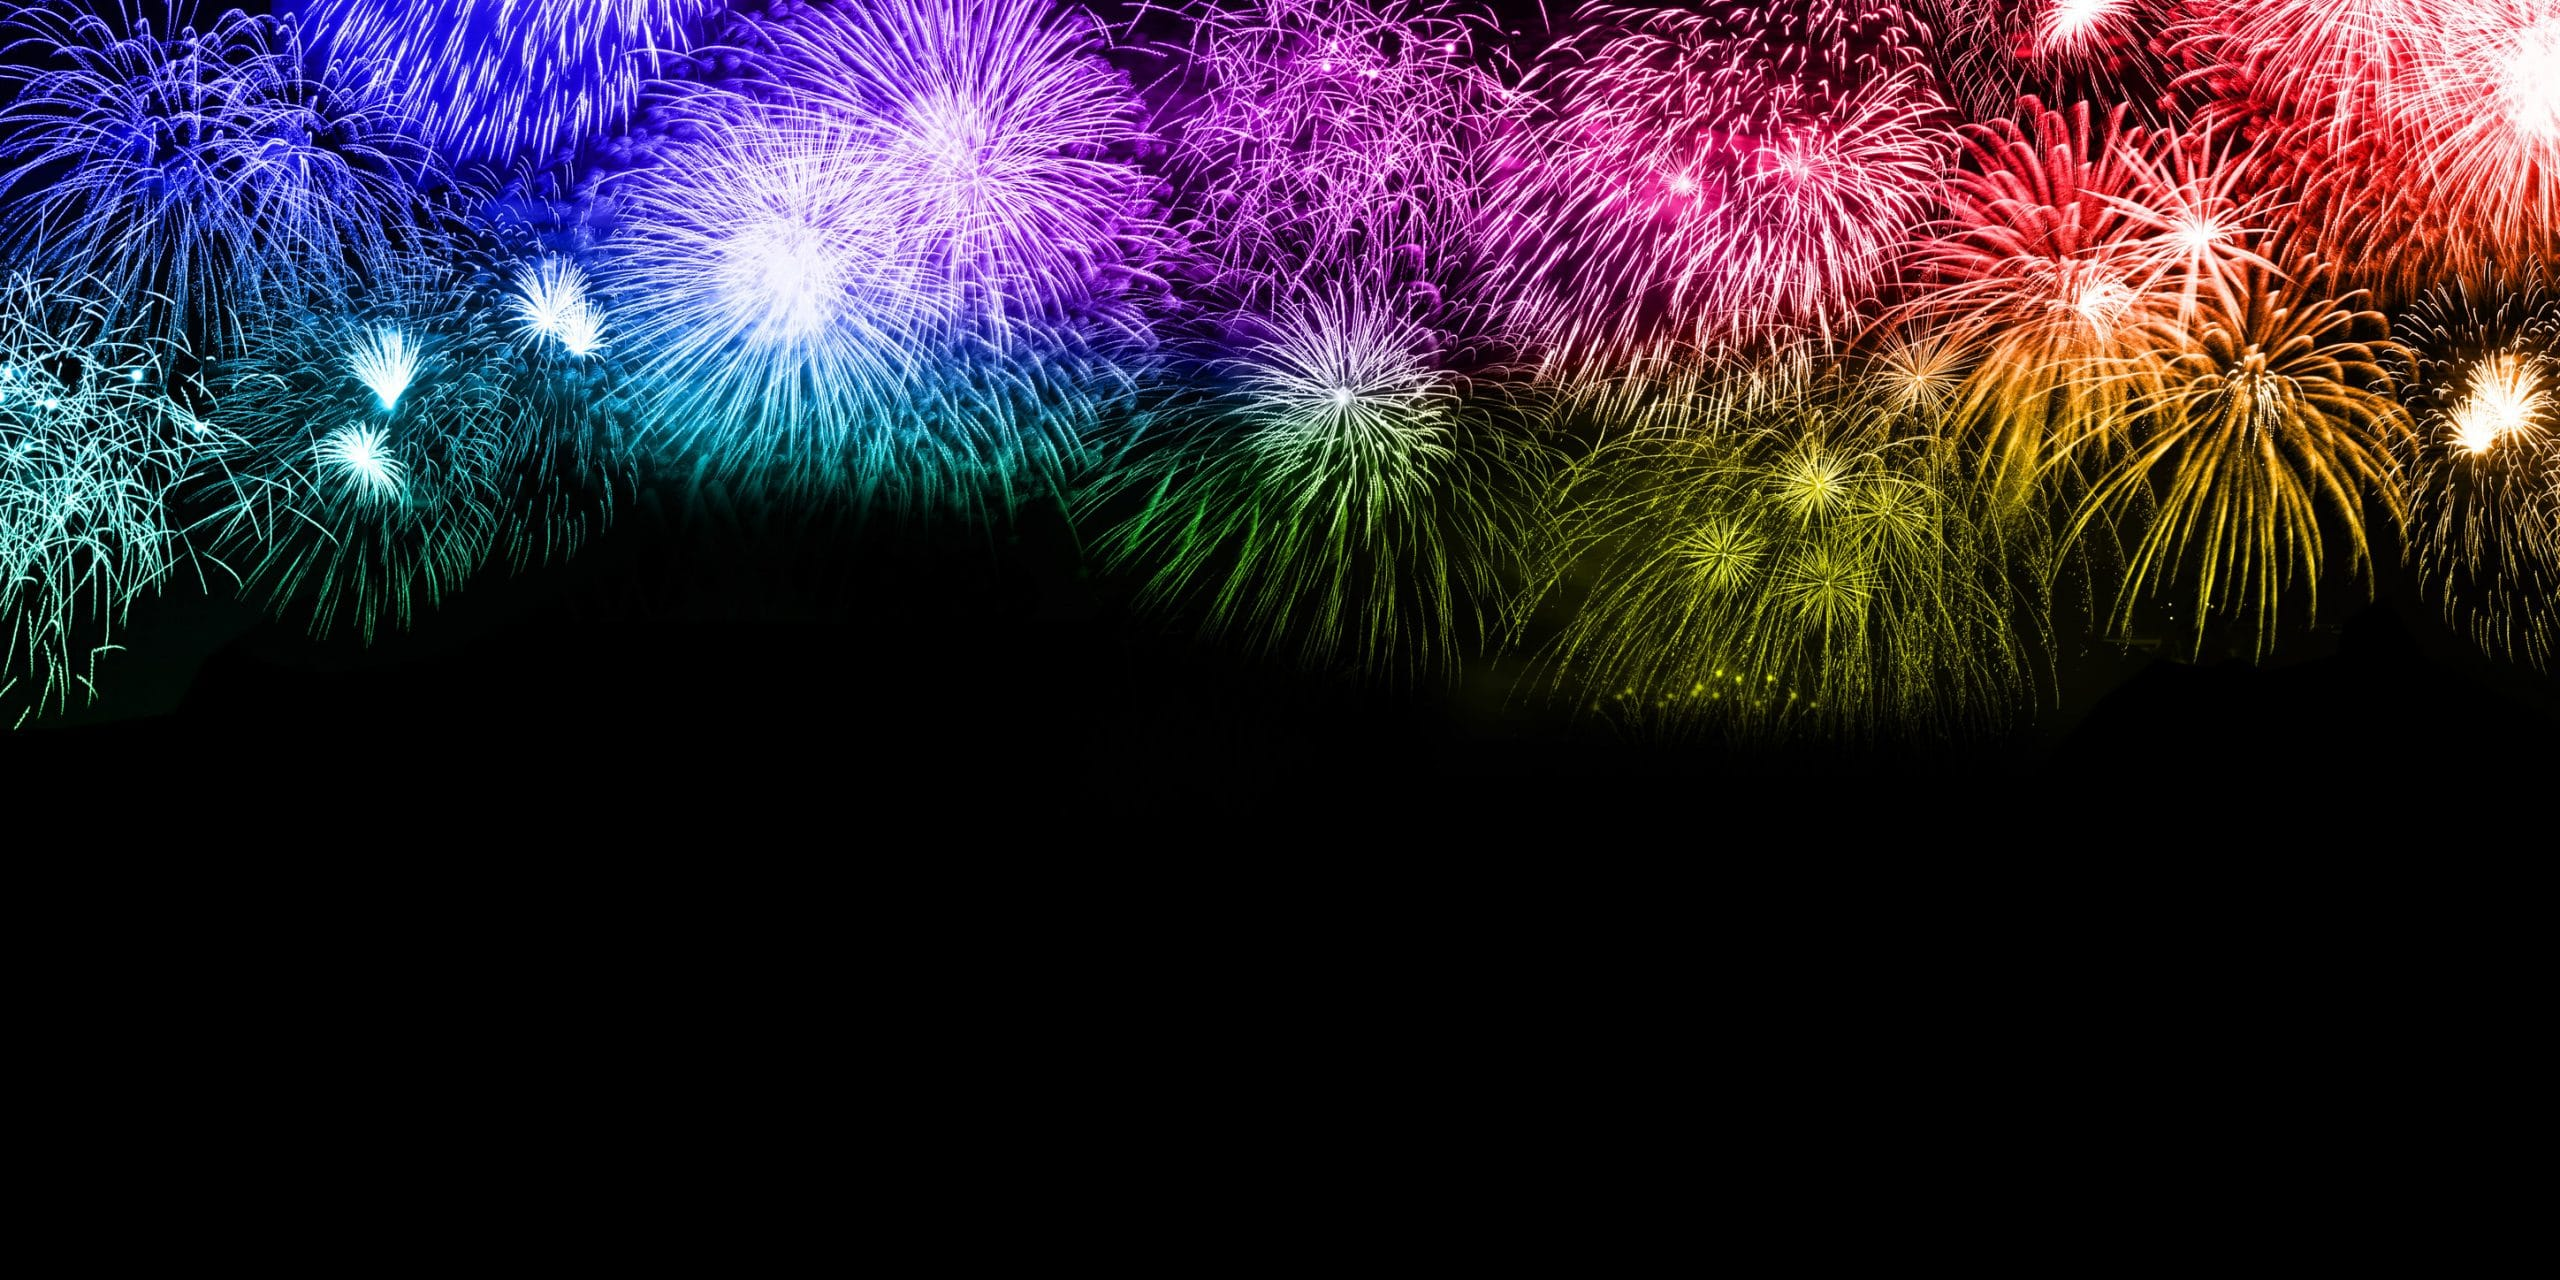 New Year's Eve fireworks background copyspace copy space colorful banner years year firework